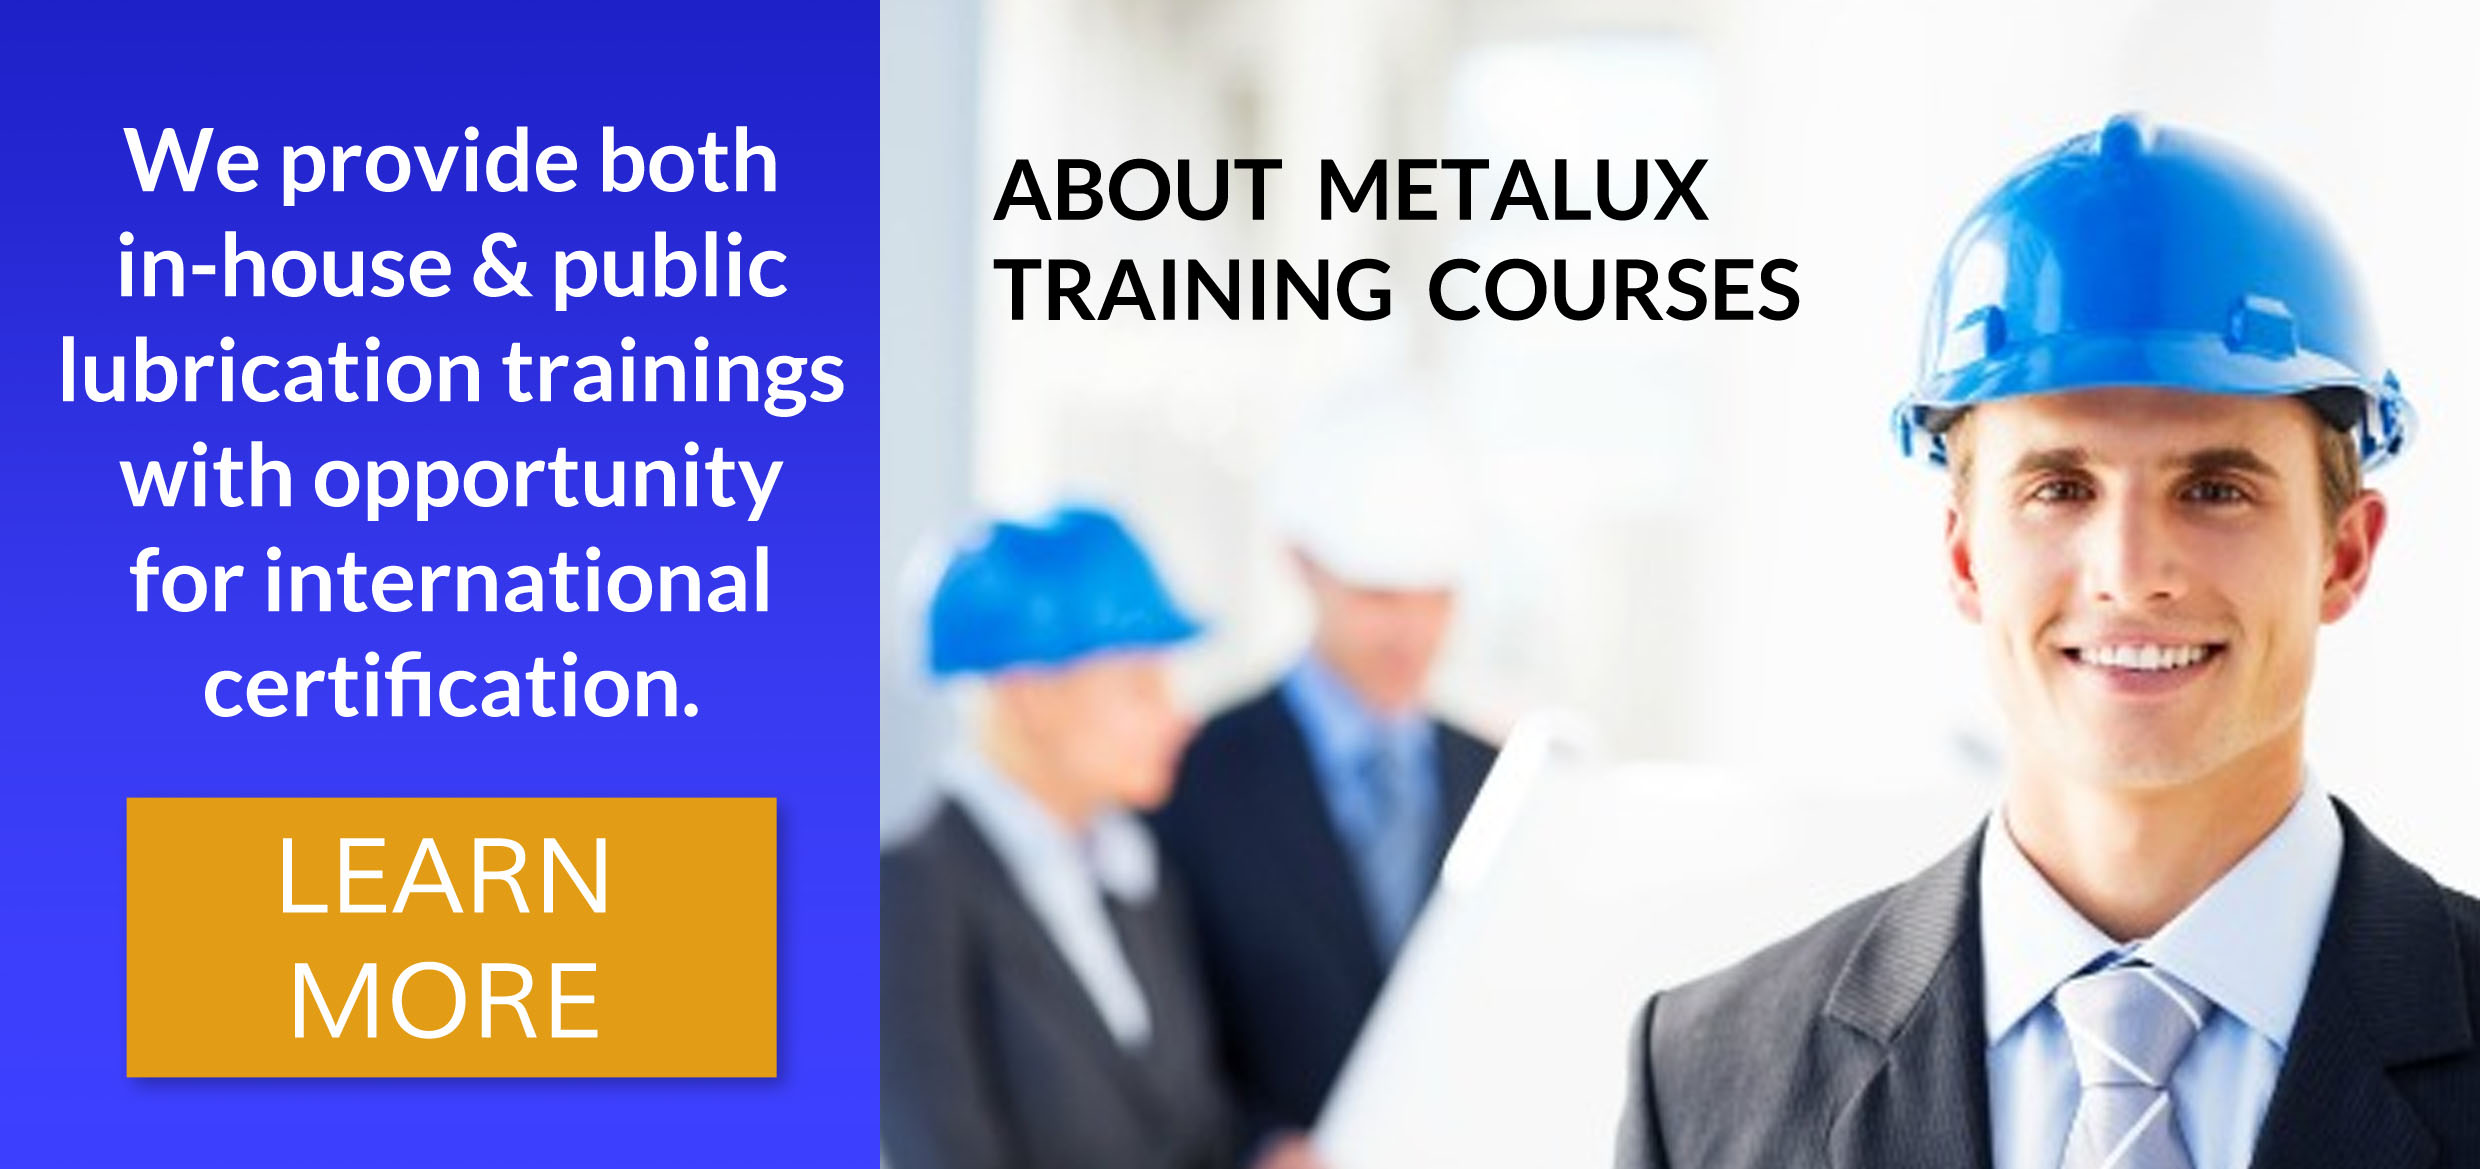 About Metalux Training